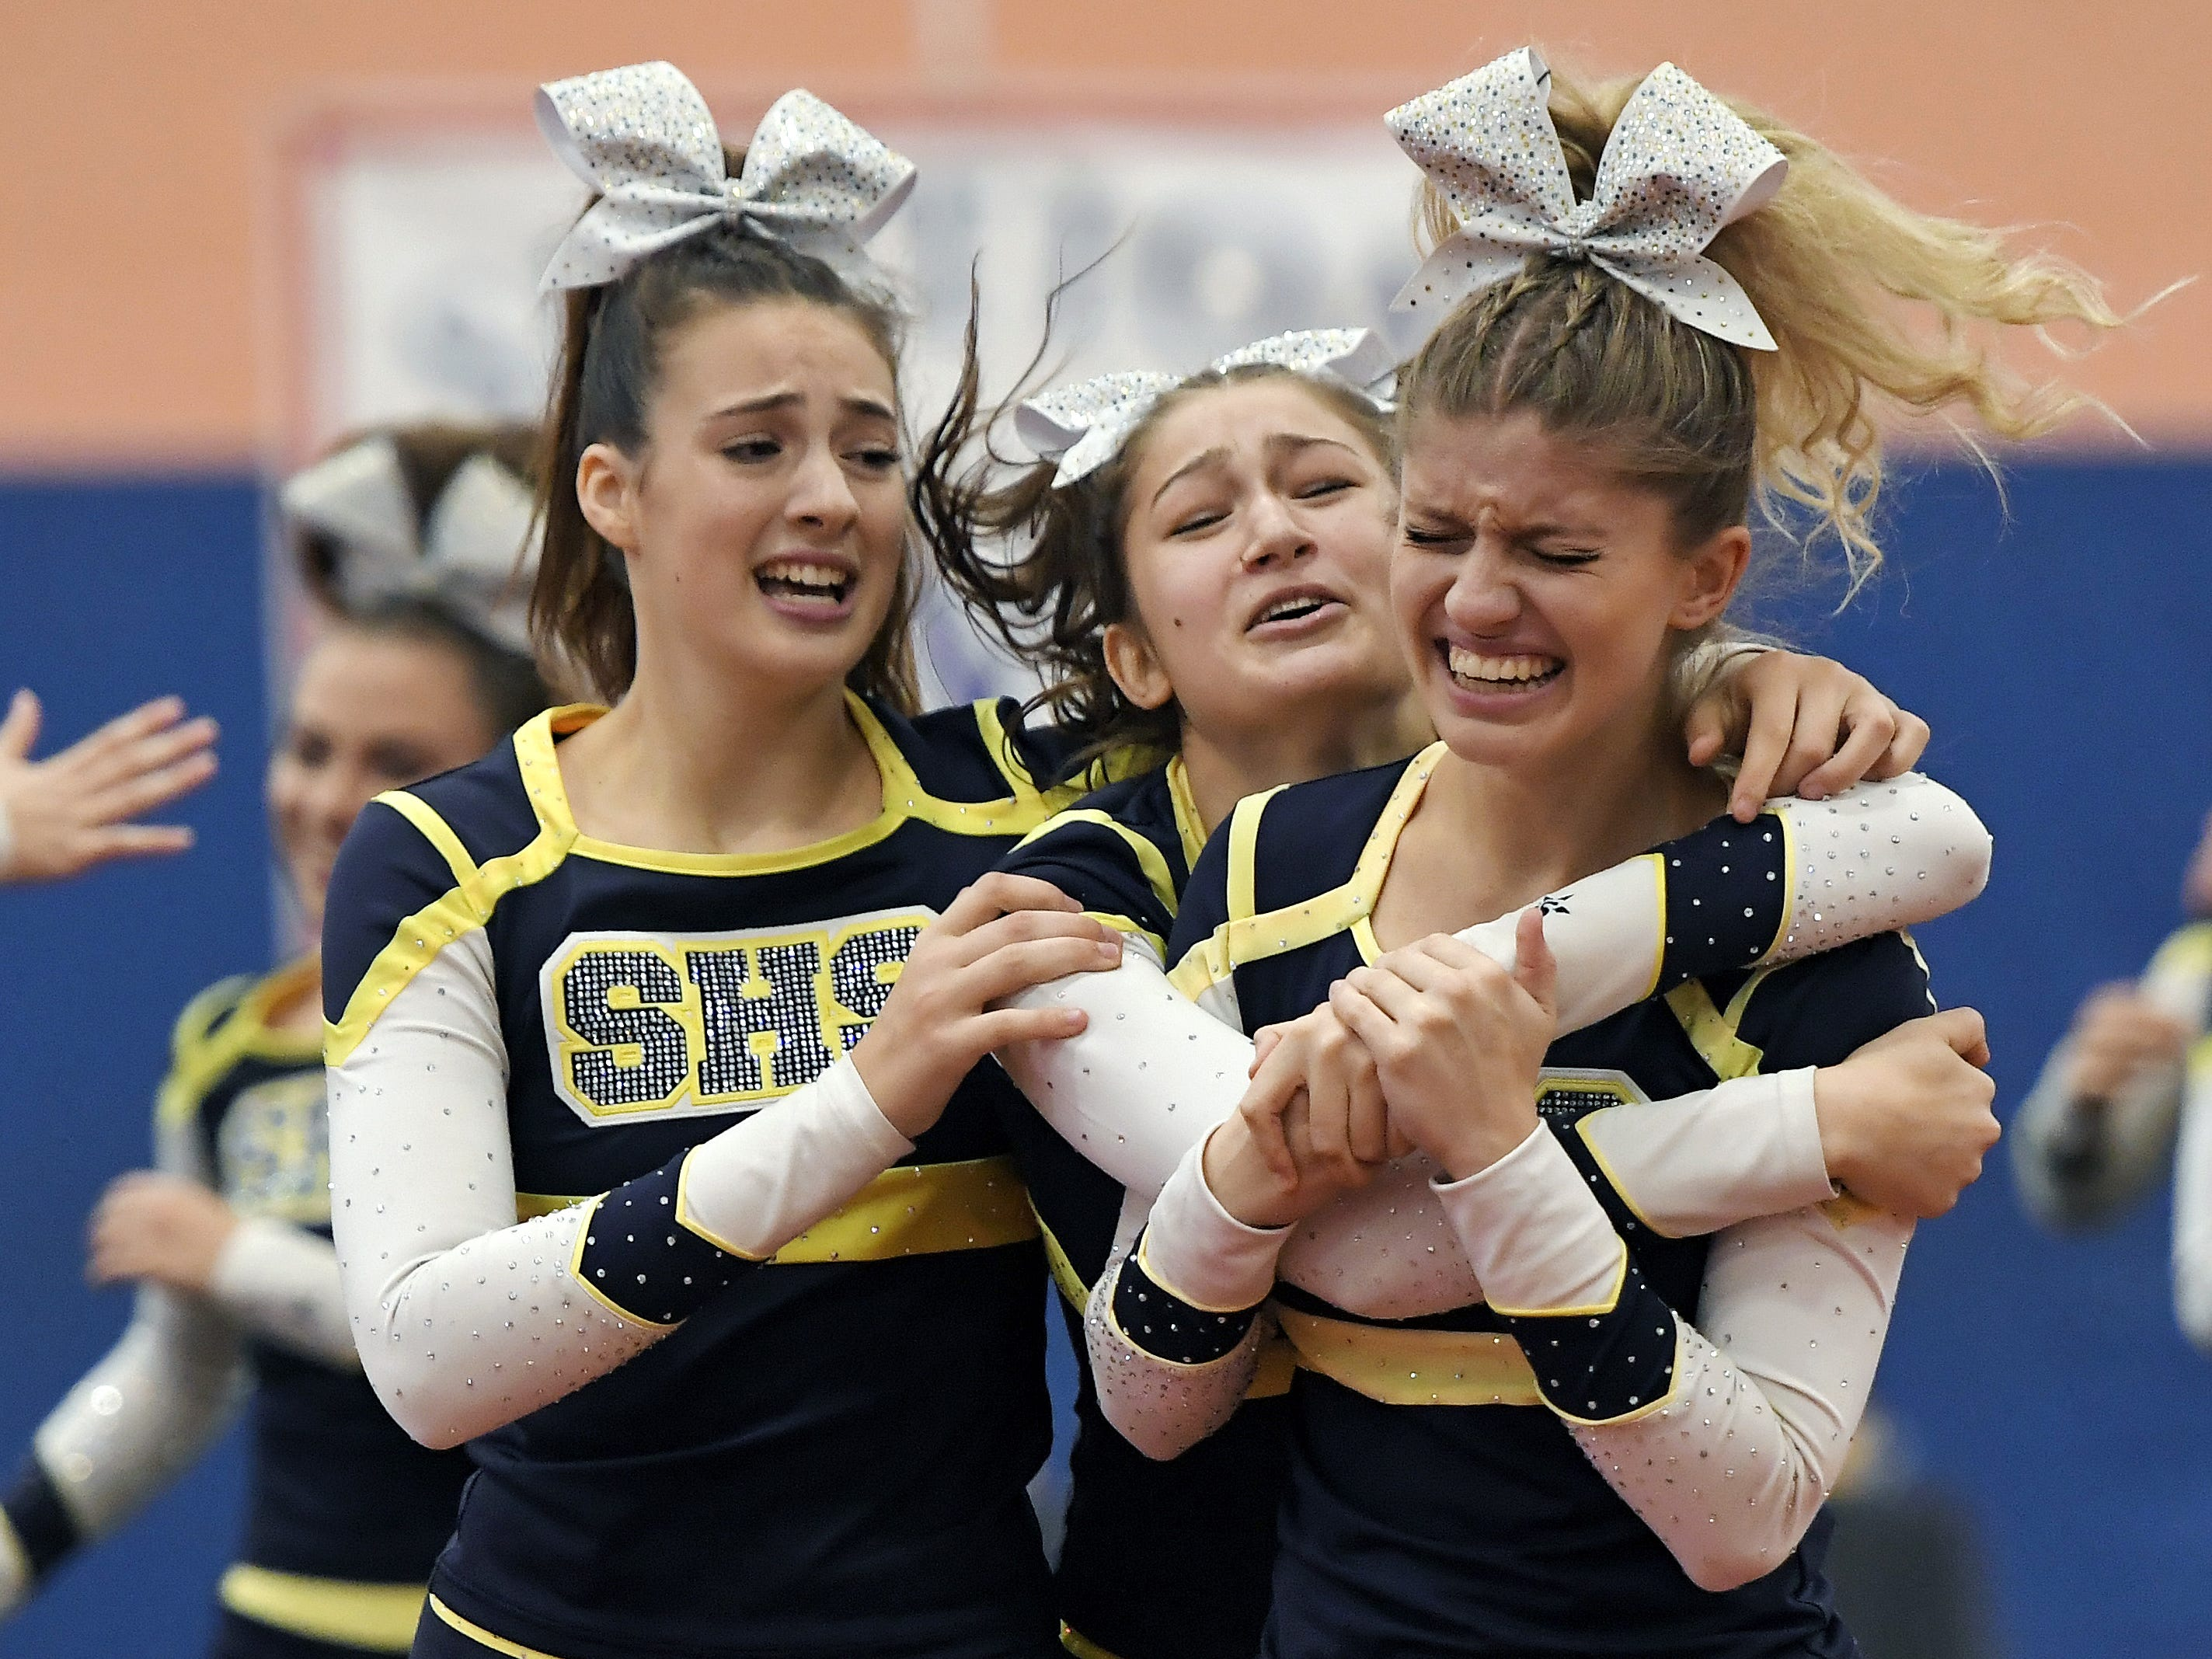 Spencerport cheerleaders celebrate after their routine during the Section V Fall Cheerleading Championships at RIT, Saturday, Oct. 27, 2018.